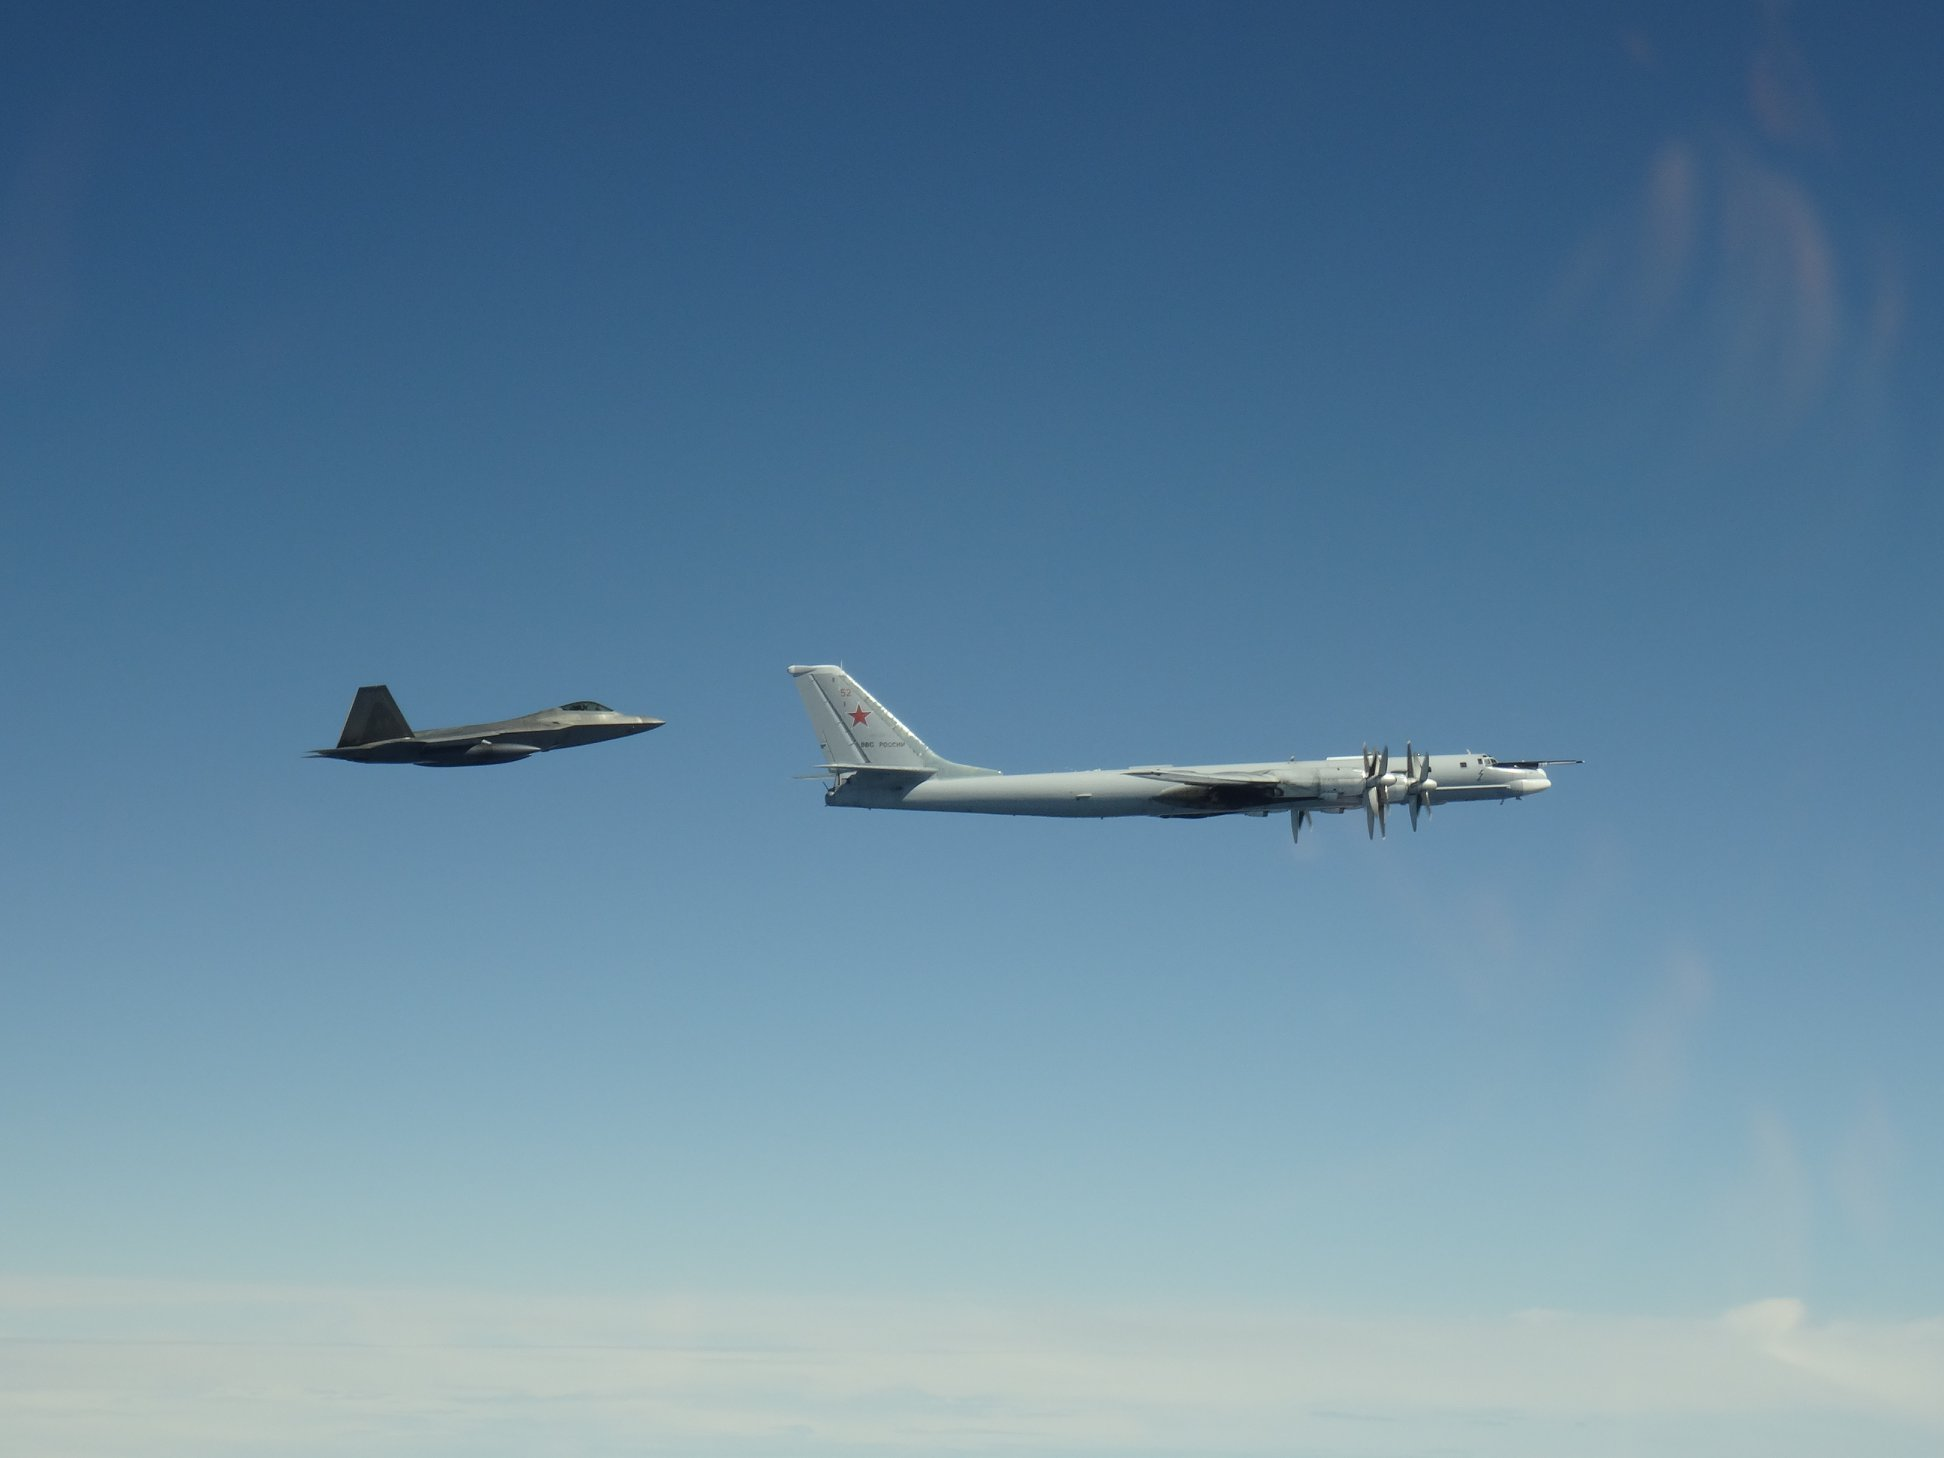 NORAD F-22 Raptors recently intercepted eight Russian aircraft which came within 20/32 nautical miles of Alaskan shores